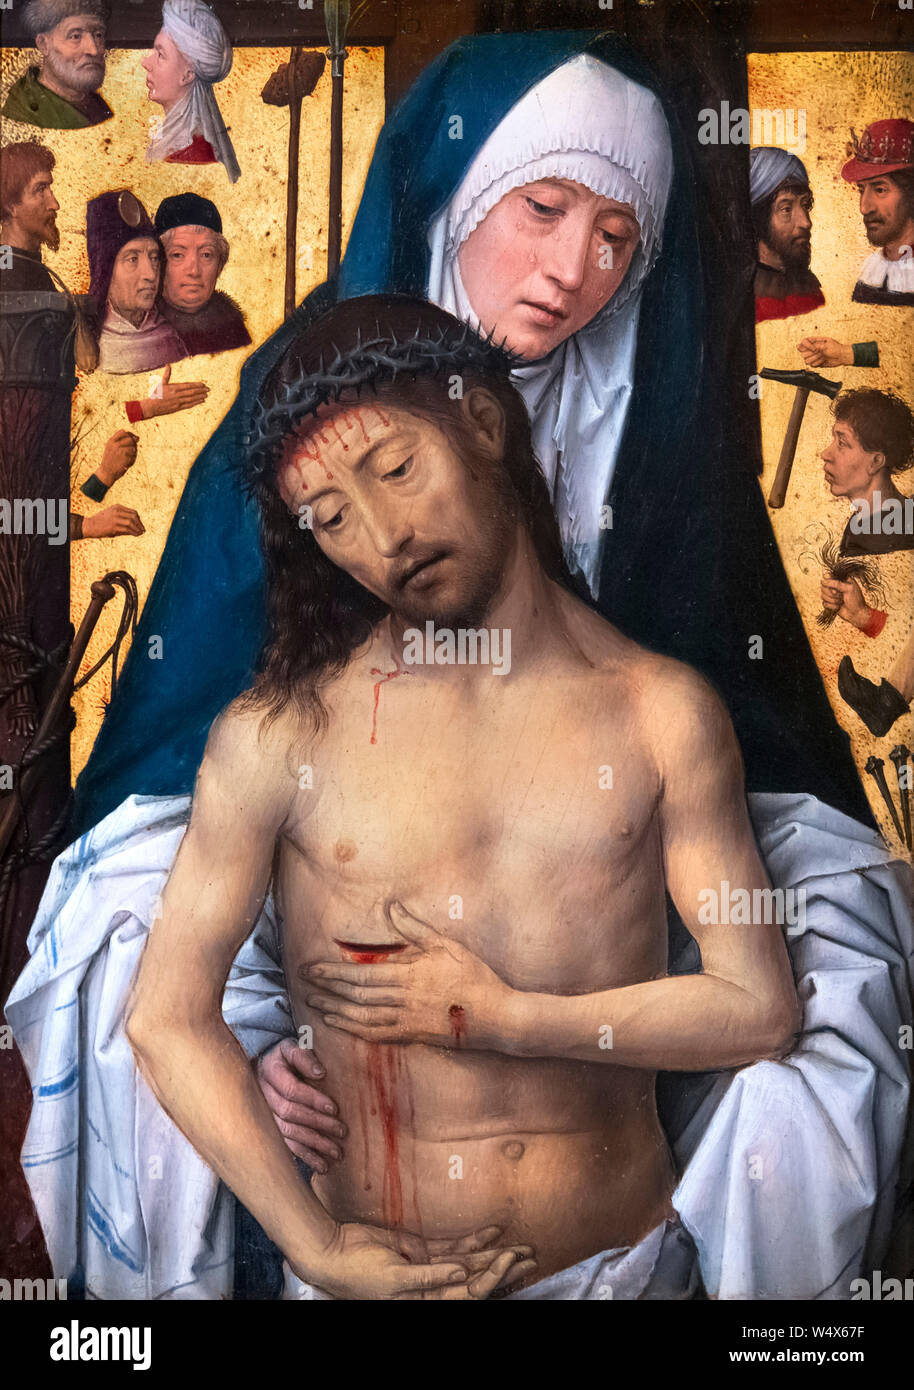 The Man of Sorrows in the Arms of the Virgin by Hans Memling (c.1430-1494), oil and gold leaf on wood panel, c.1475-9 Stock Photo